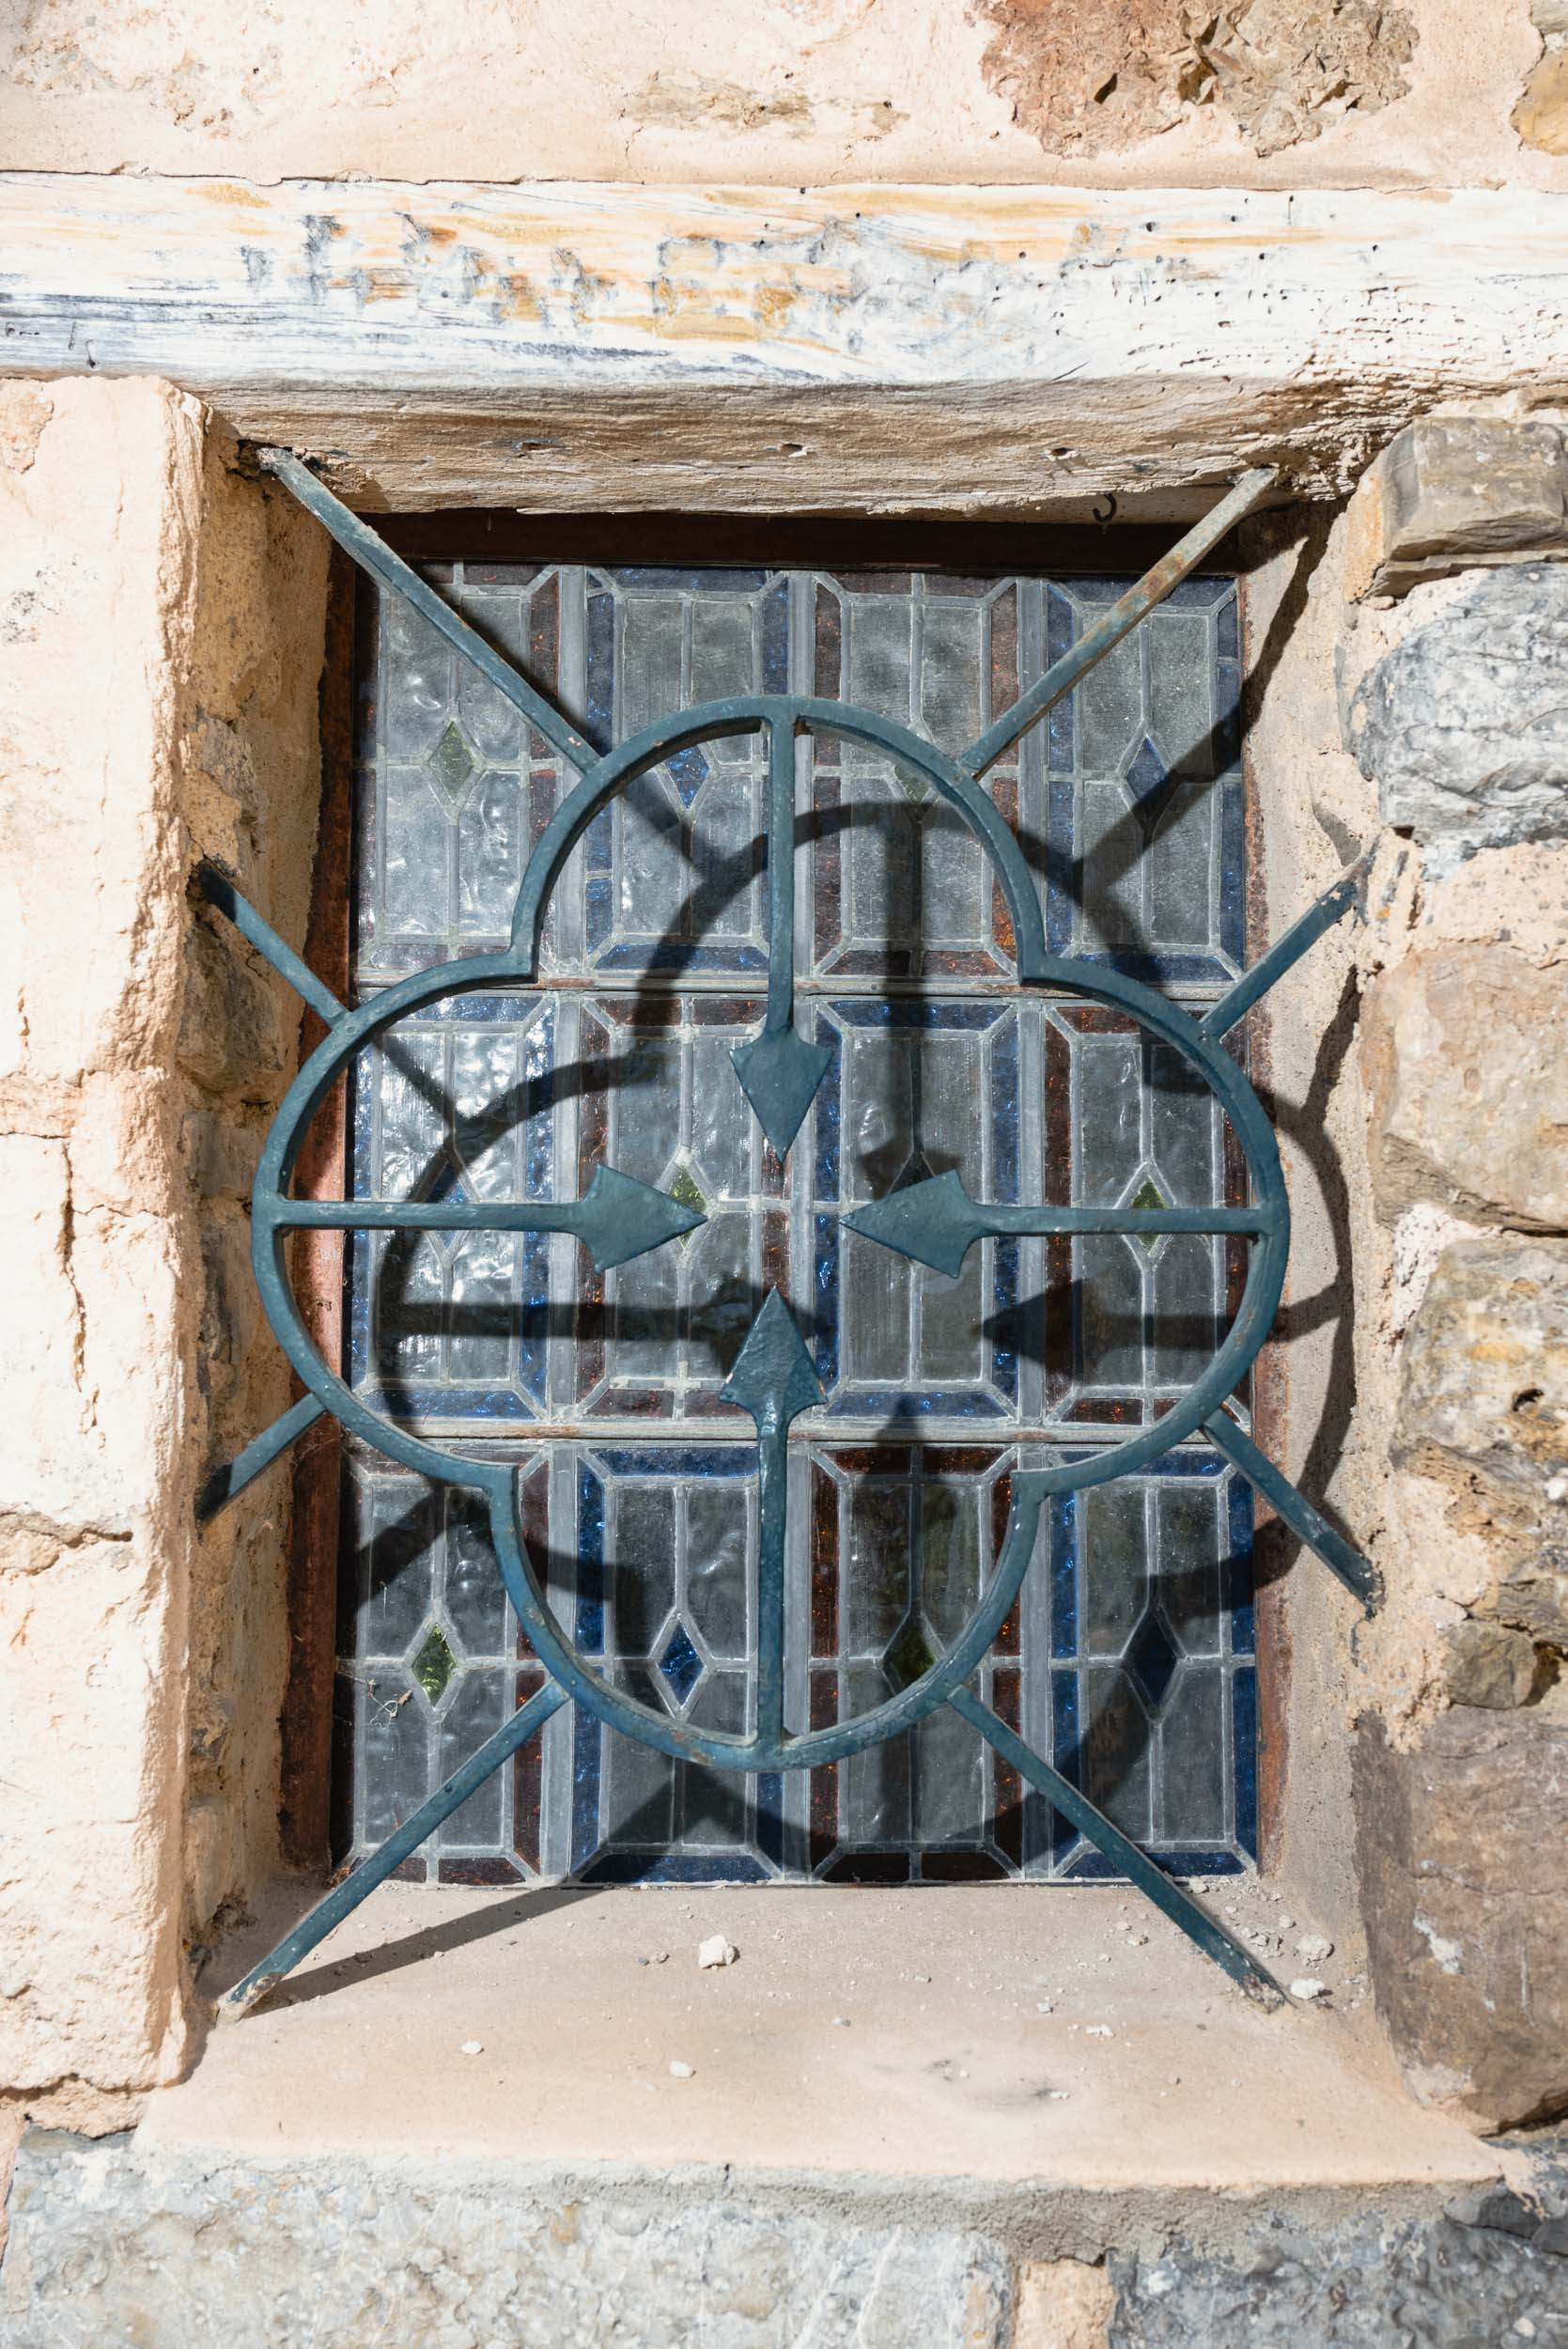 Rod iron detail window Deia, Spain